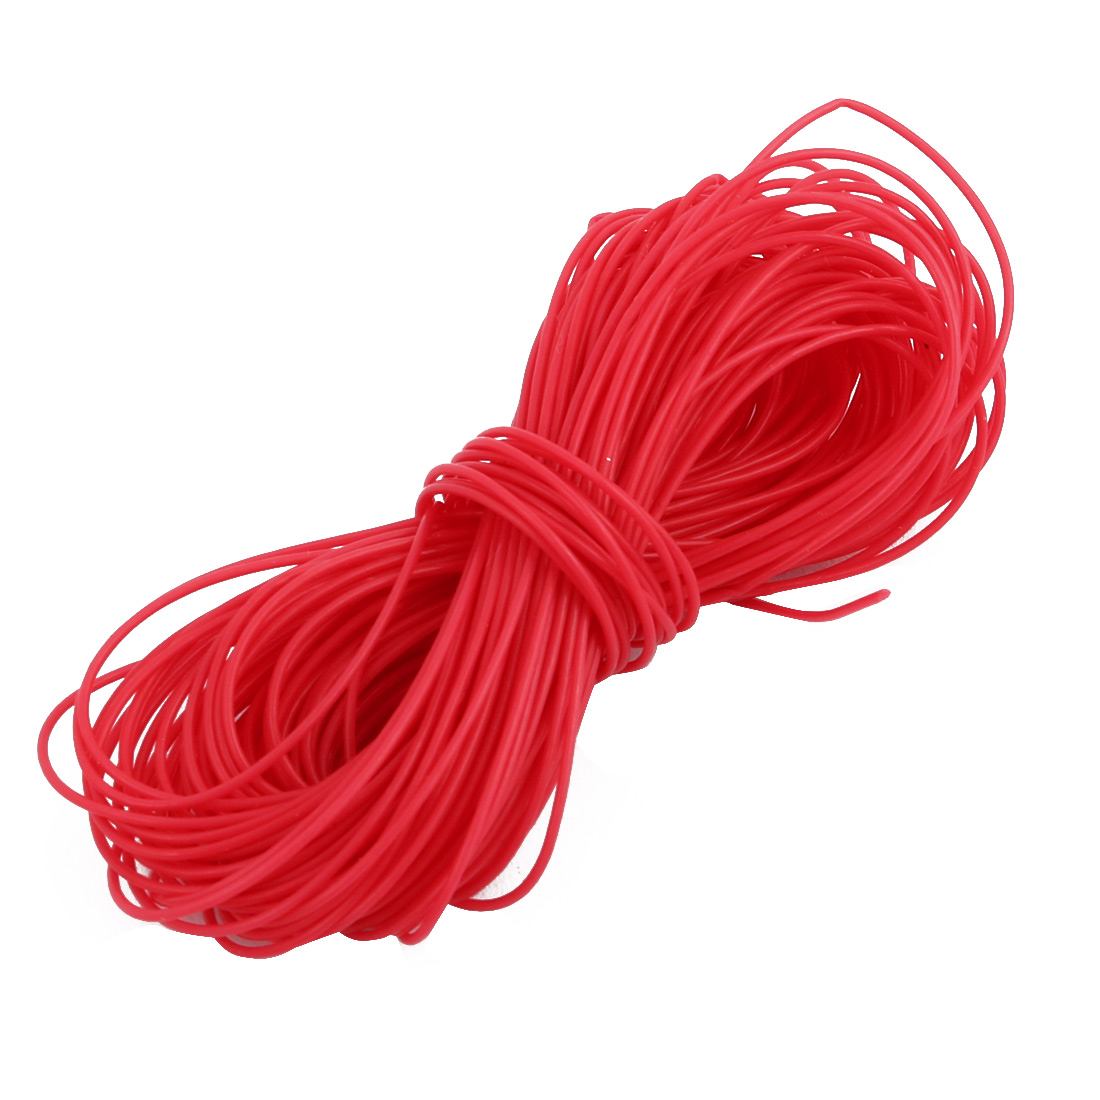 0.38mmx0.68mm PTFE Resistant High Temperature Red Tubing 5 Meters 16.4Ft